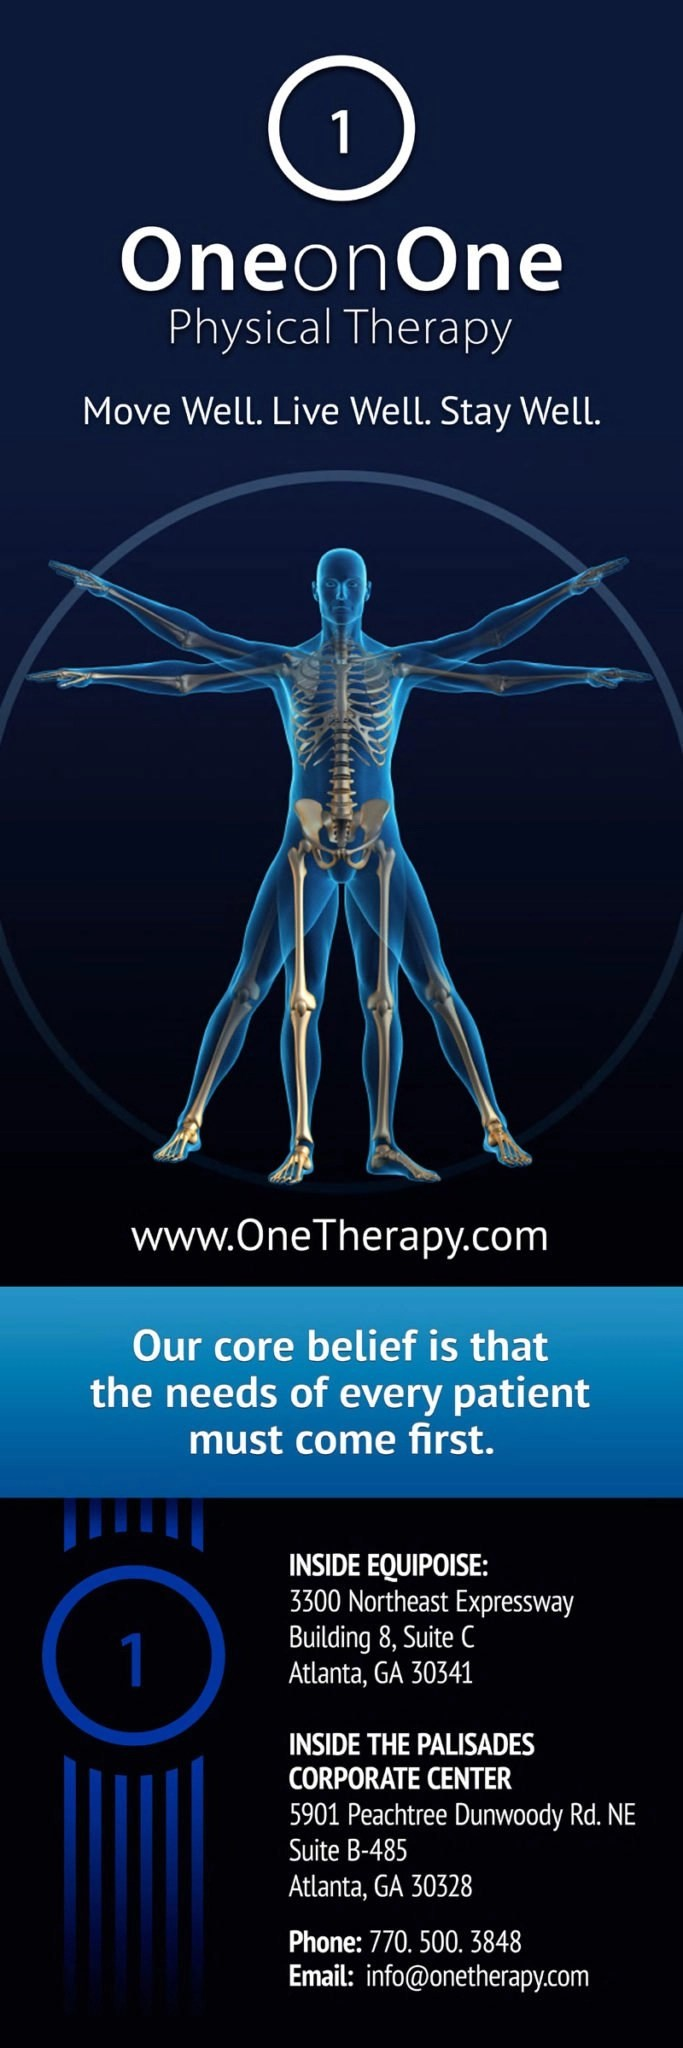 One on One Physical Therapy Pop-up Banner Design